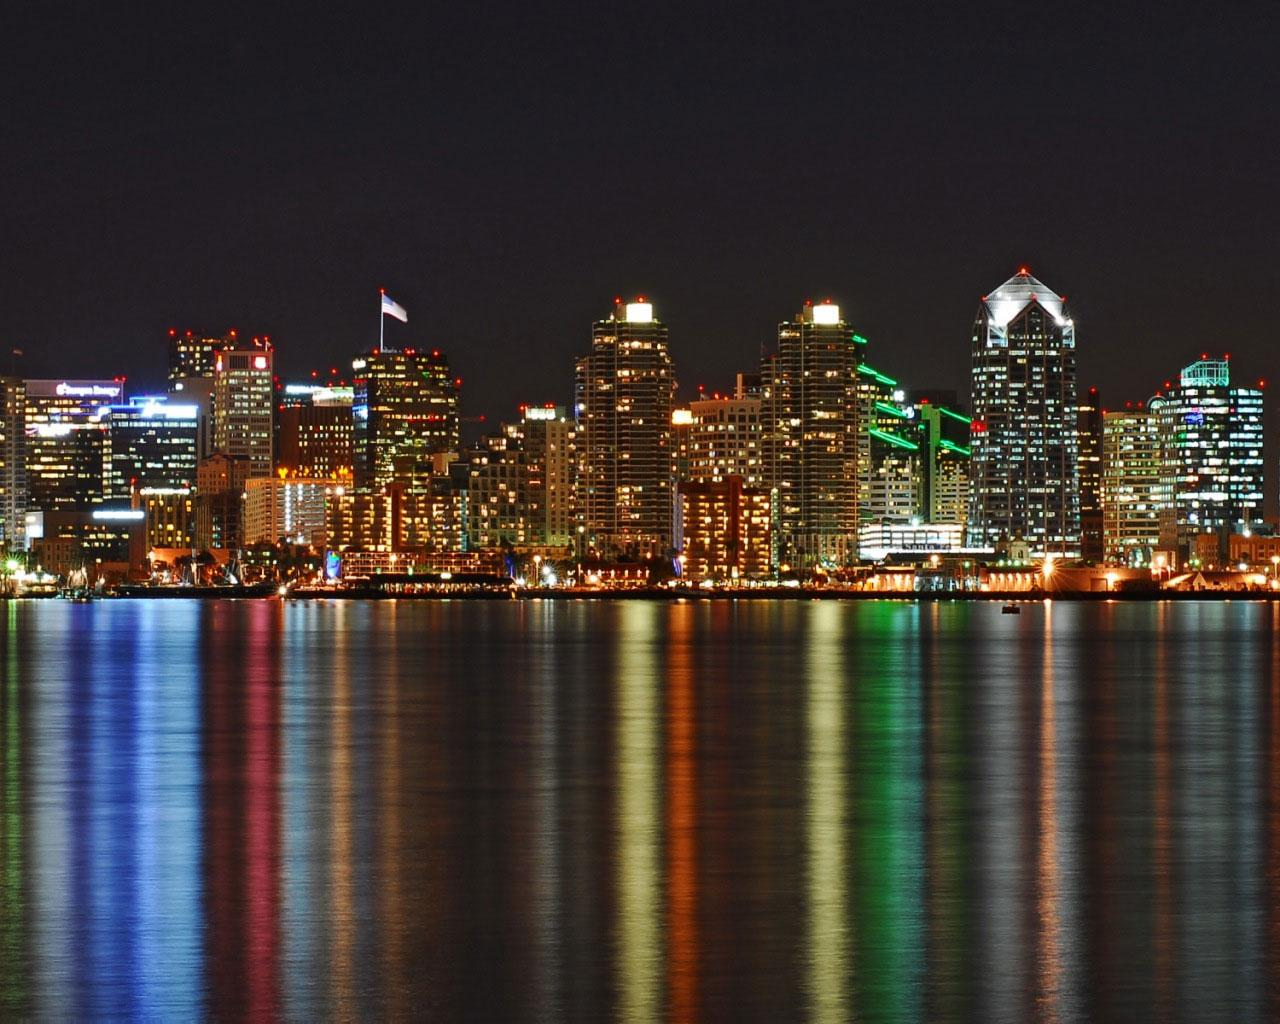 Best city - San Diego - City Skyline 1280x1024 Wallpaper #1